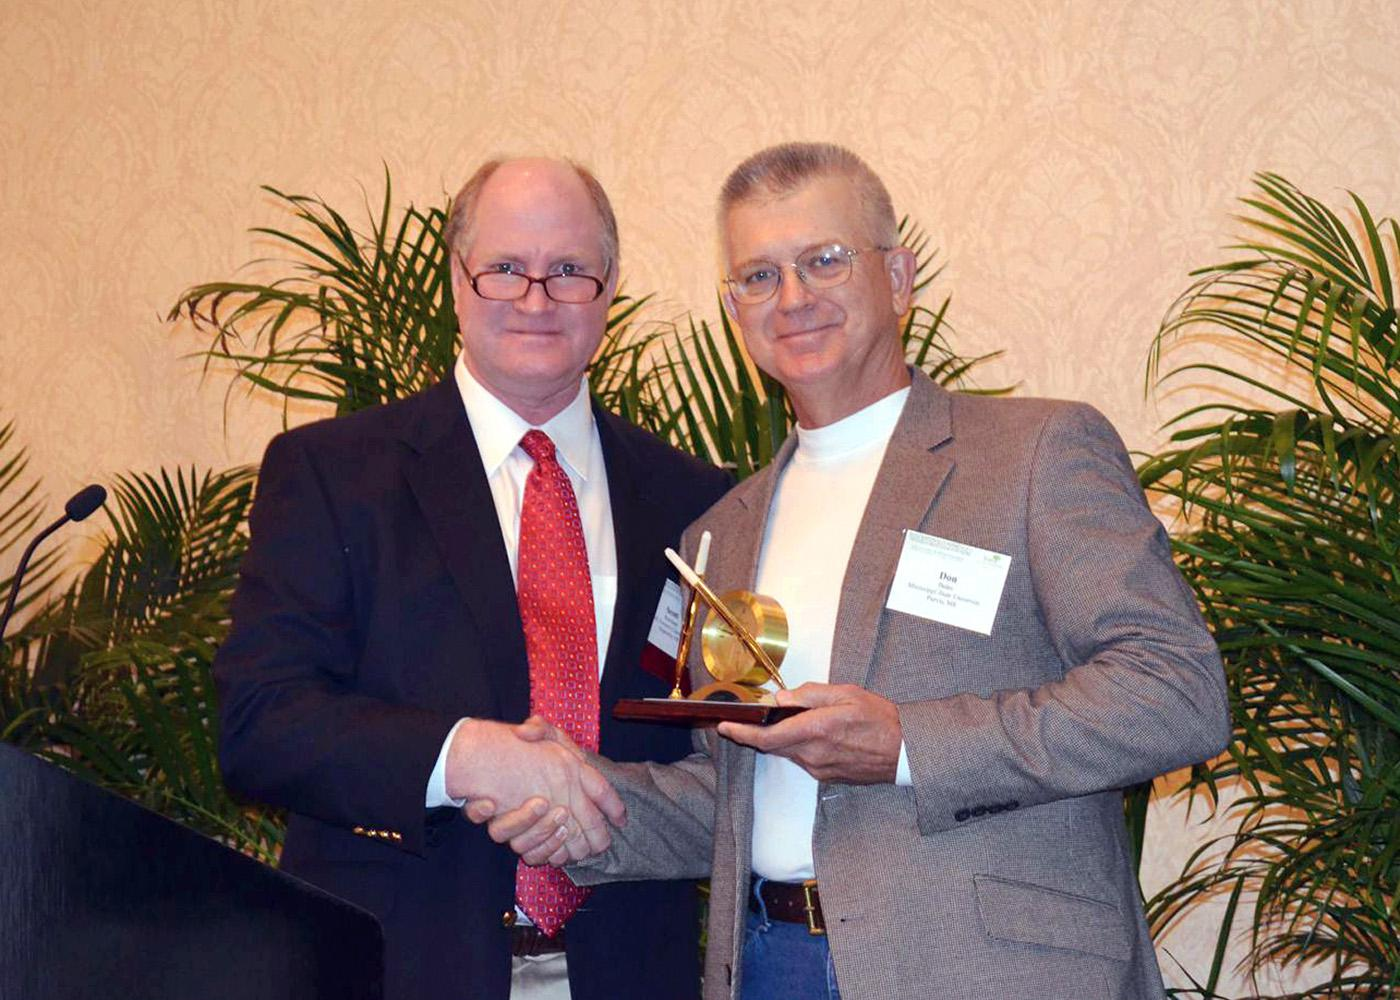 Scott Rowland, South Central regional vice president of the Forest Landowners Association, presents their Extension Forester of the Year award to Don Bales of Purvis, a forest and wildlife management specialist with Mississippi State University's Extension Service. (Submitted Photo)